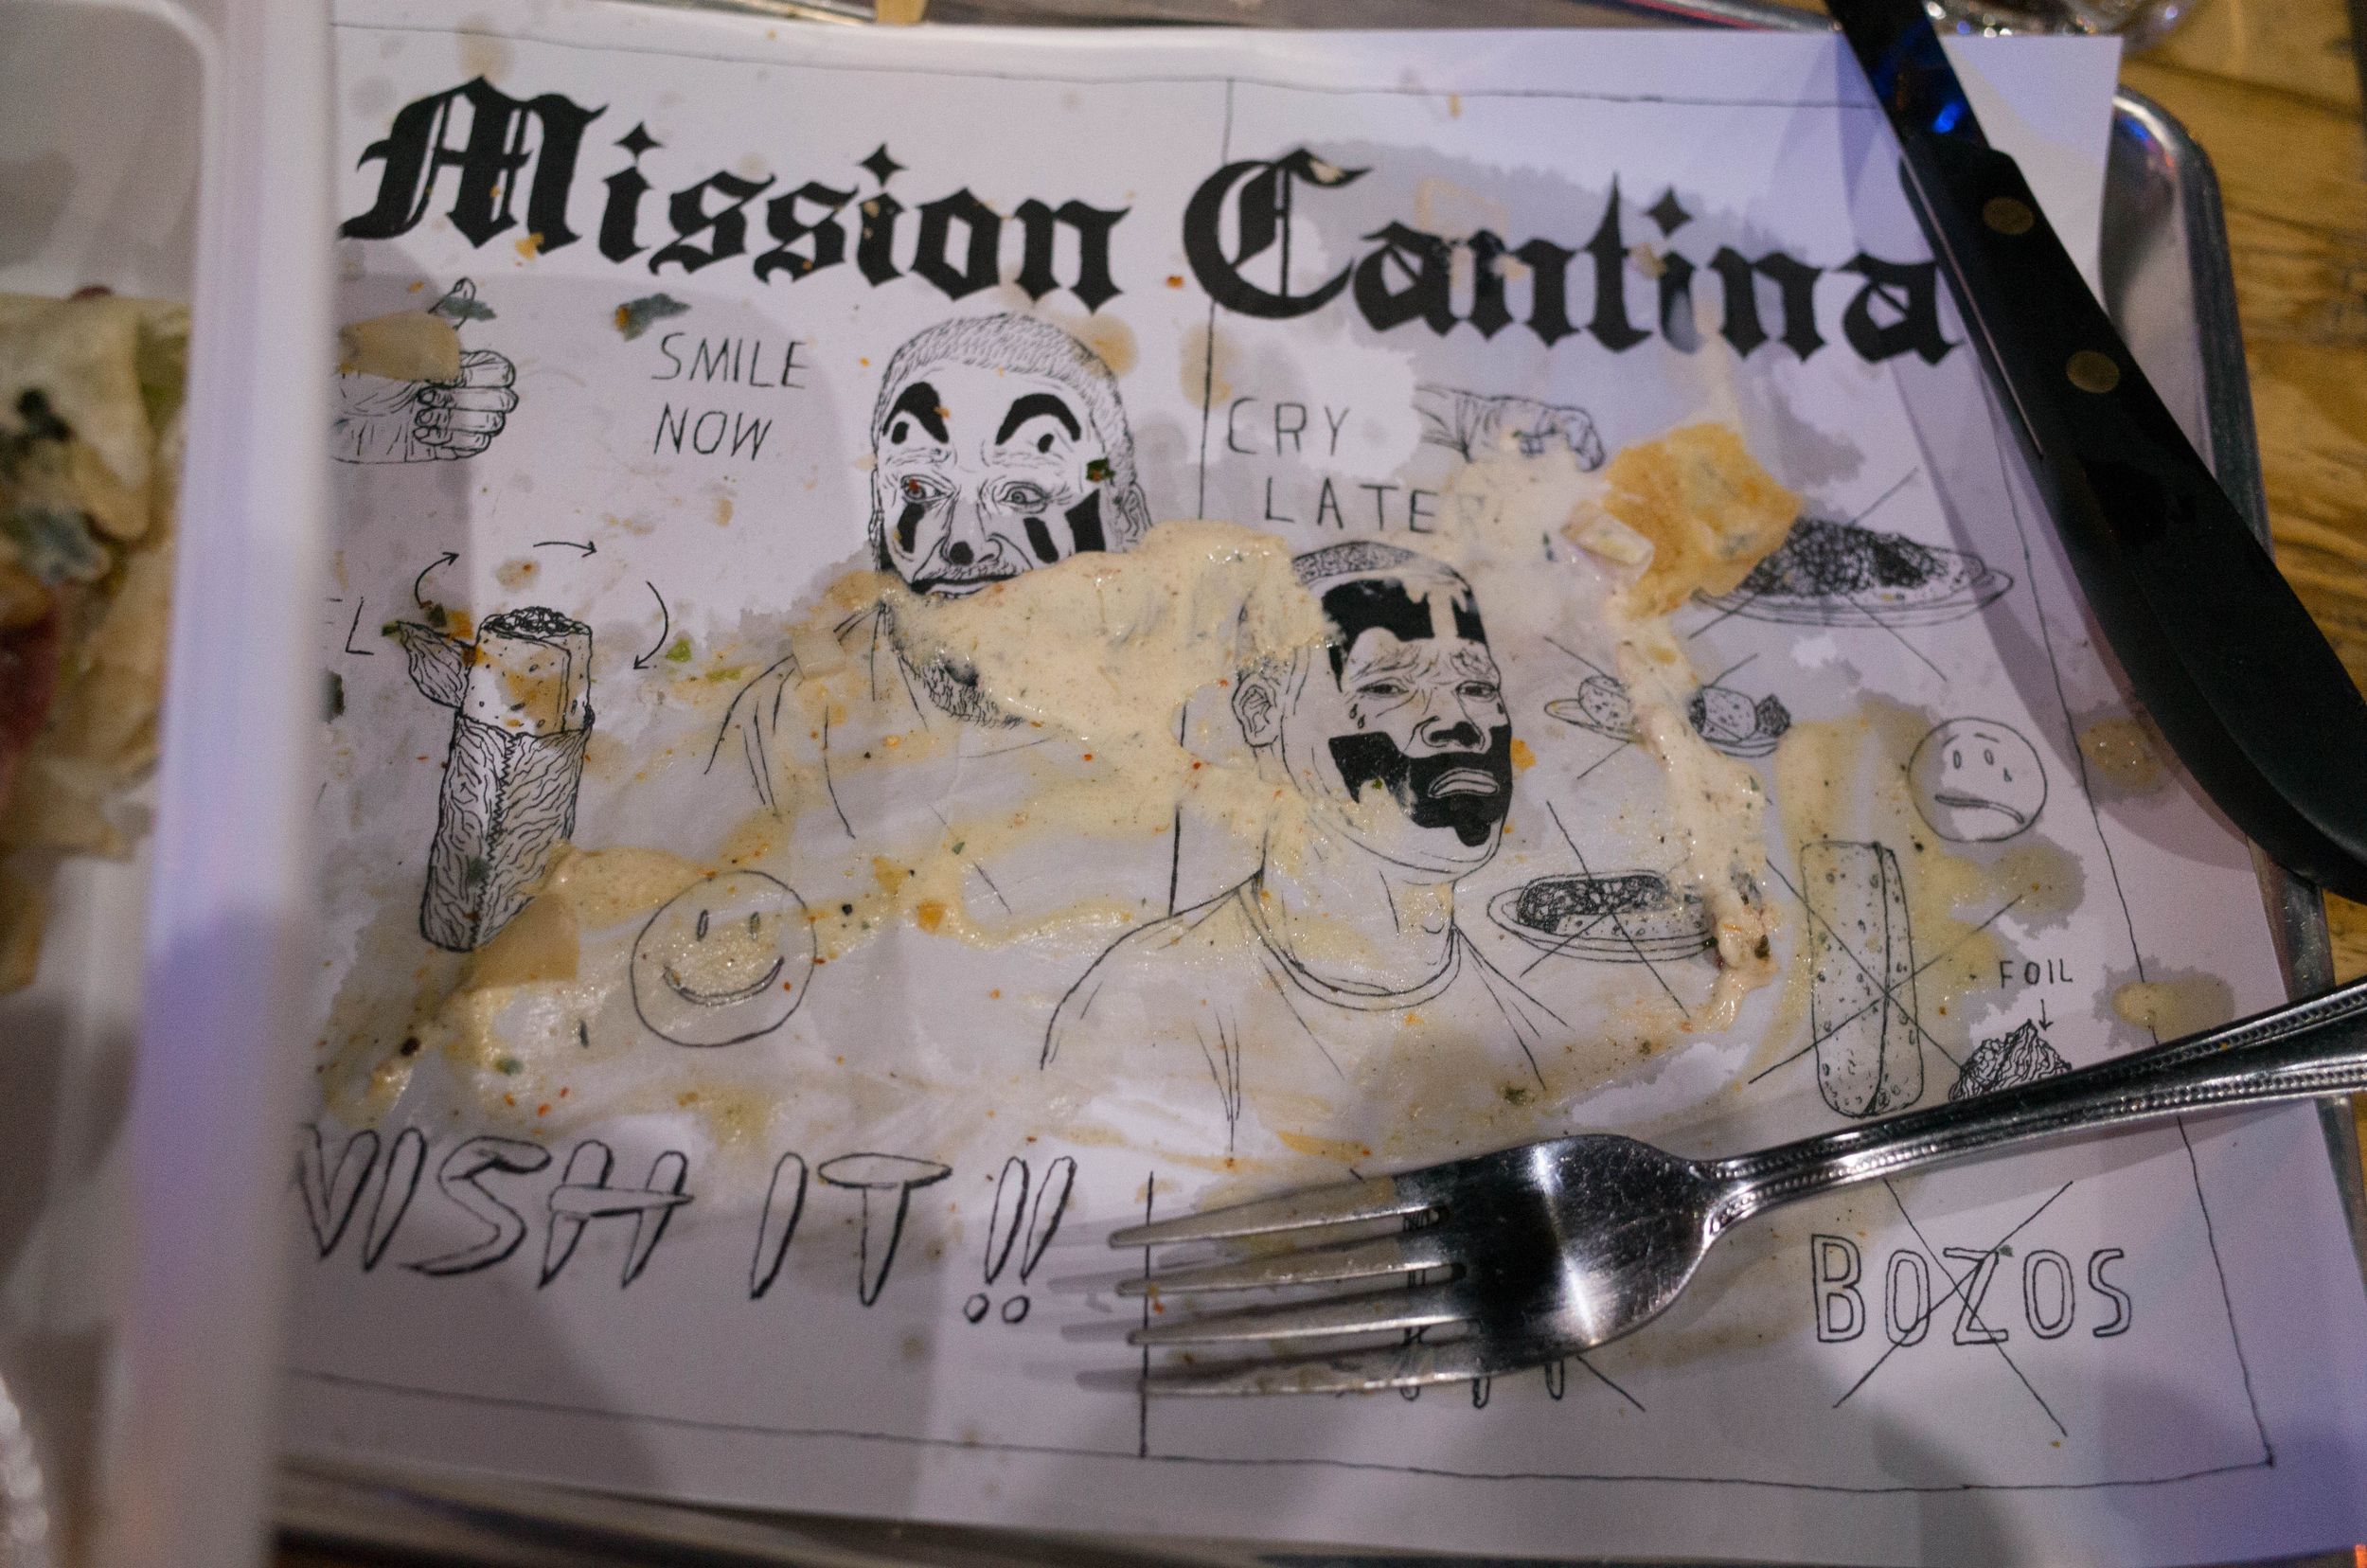 Judging from the Burrito-themed murals in the basement, I think Mission Cantina's all-burrito menu angle is here to stay.